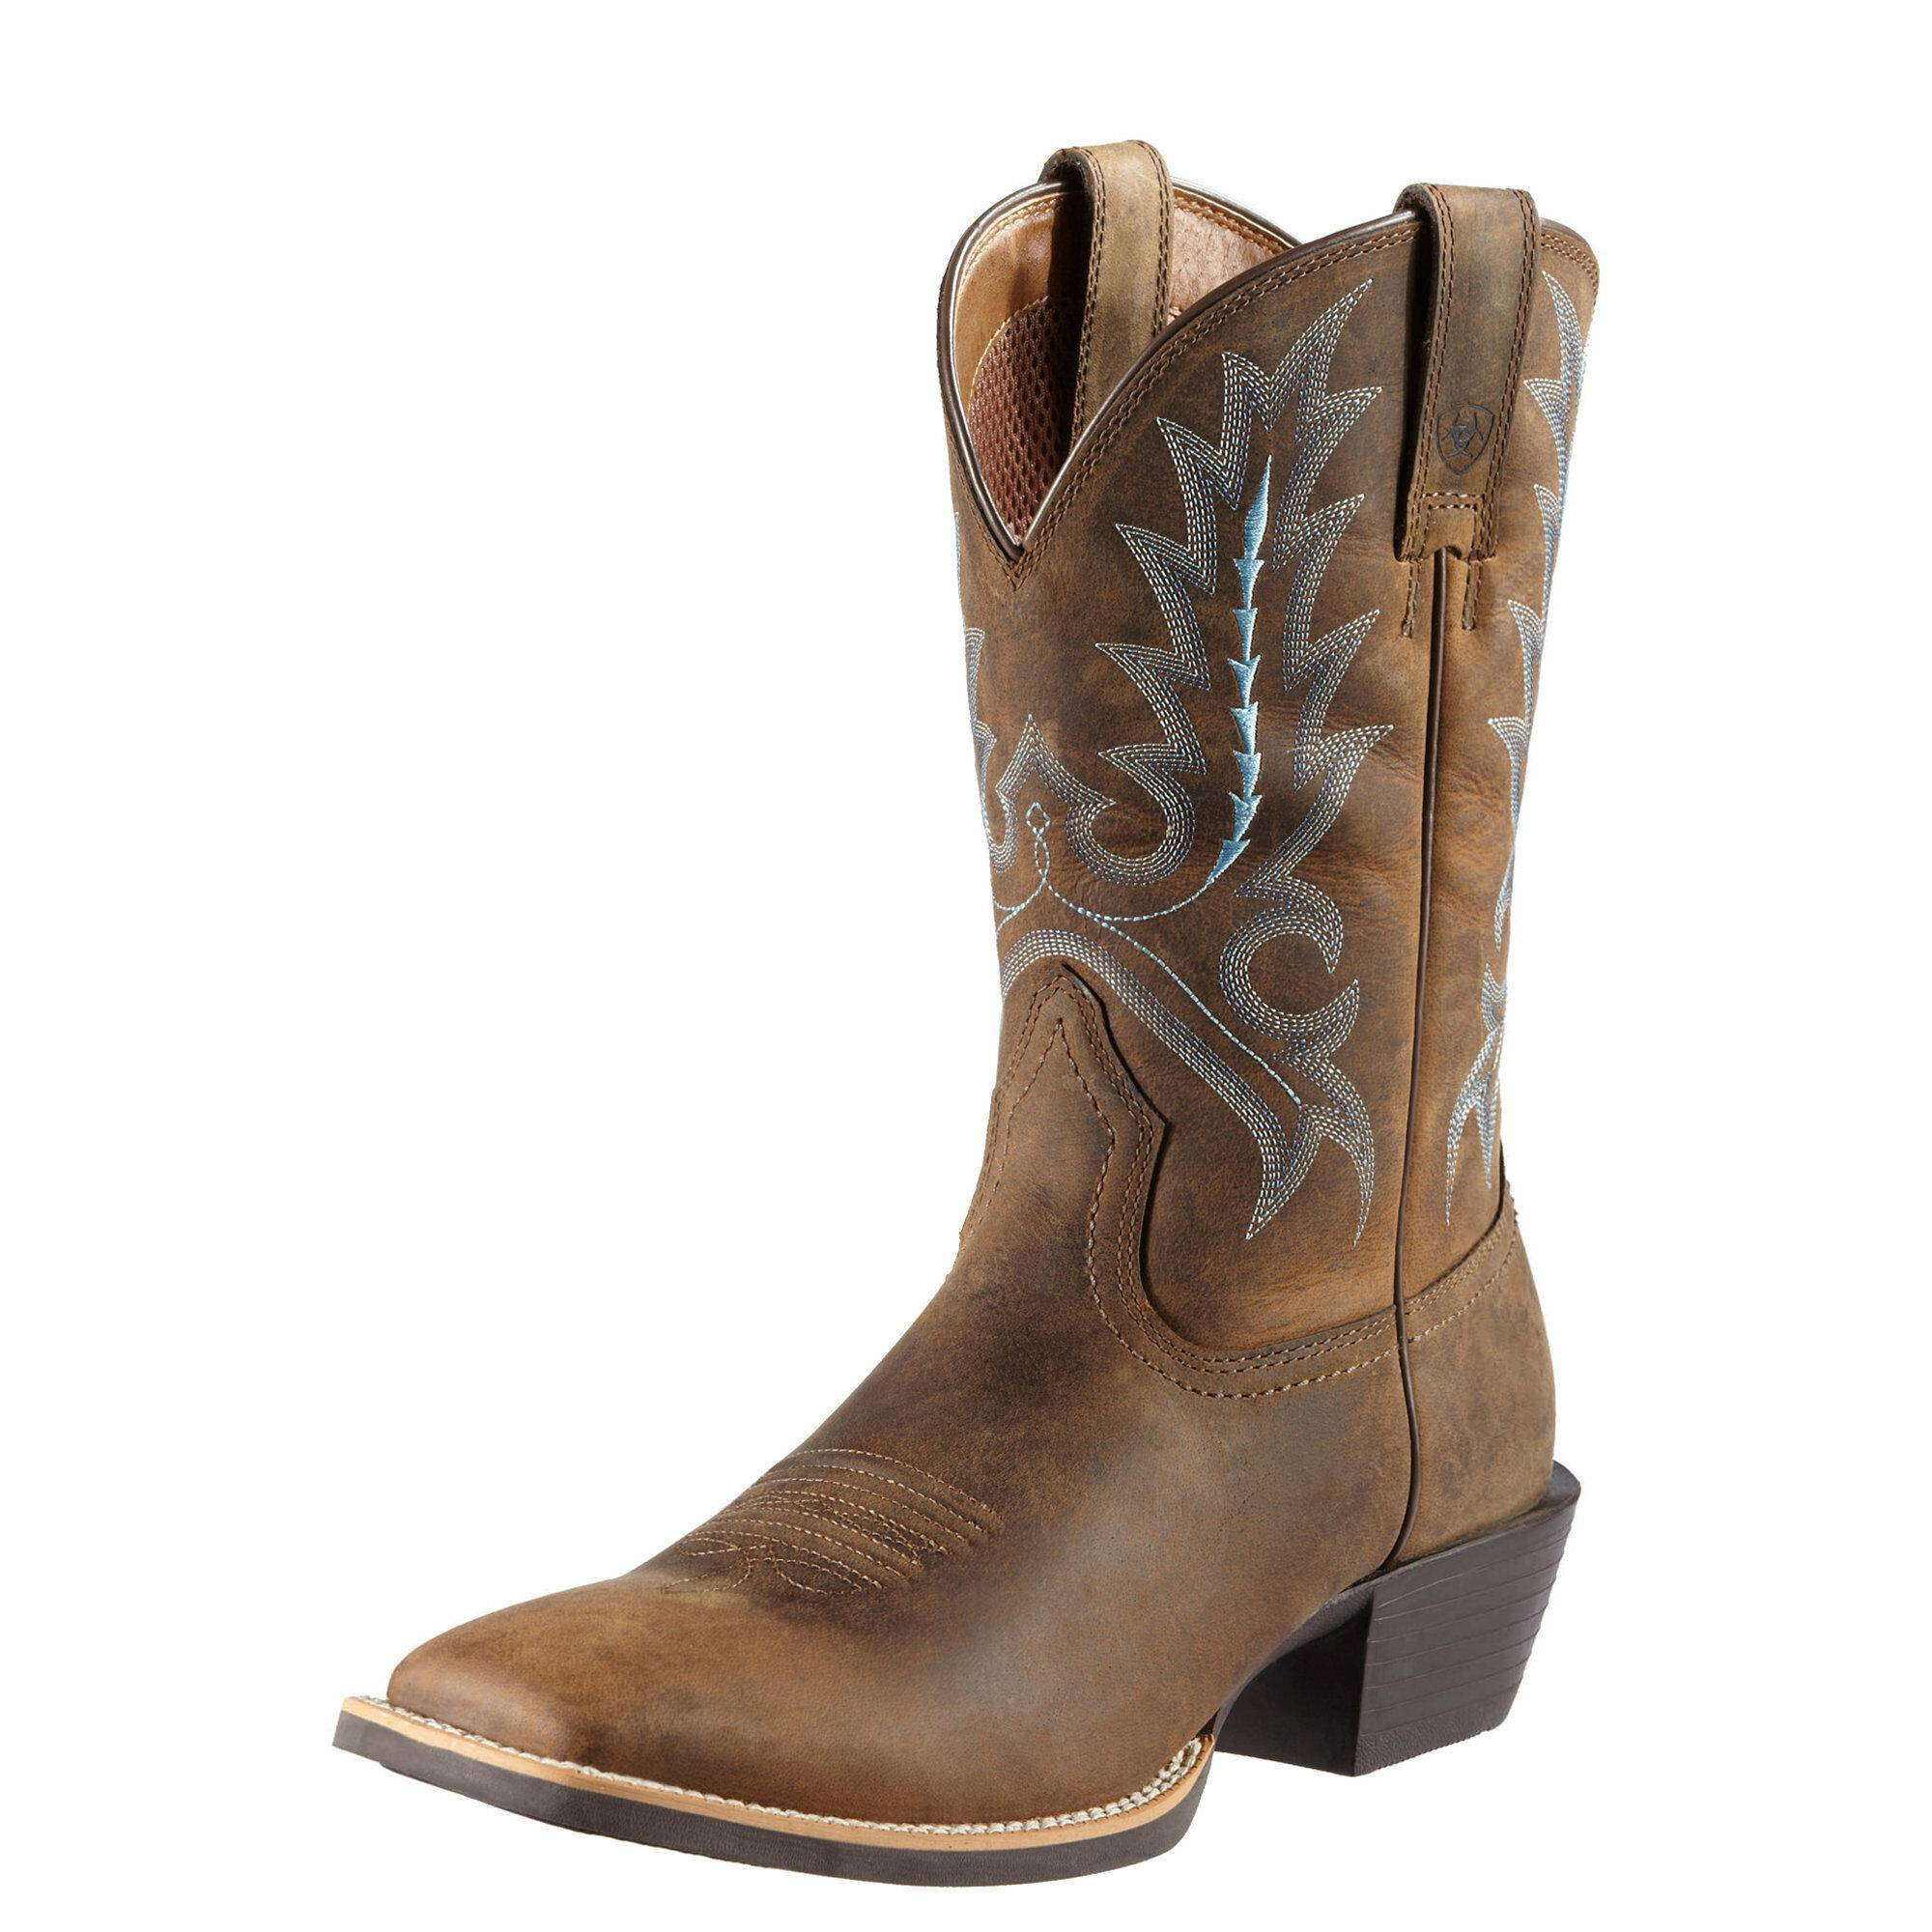 Ariat Men's Sport Outfitter Western Boots in Distressed Brown Leather, Size 7.5 D / Medium by Ariat